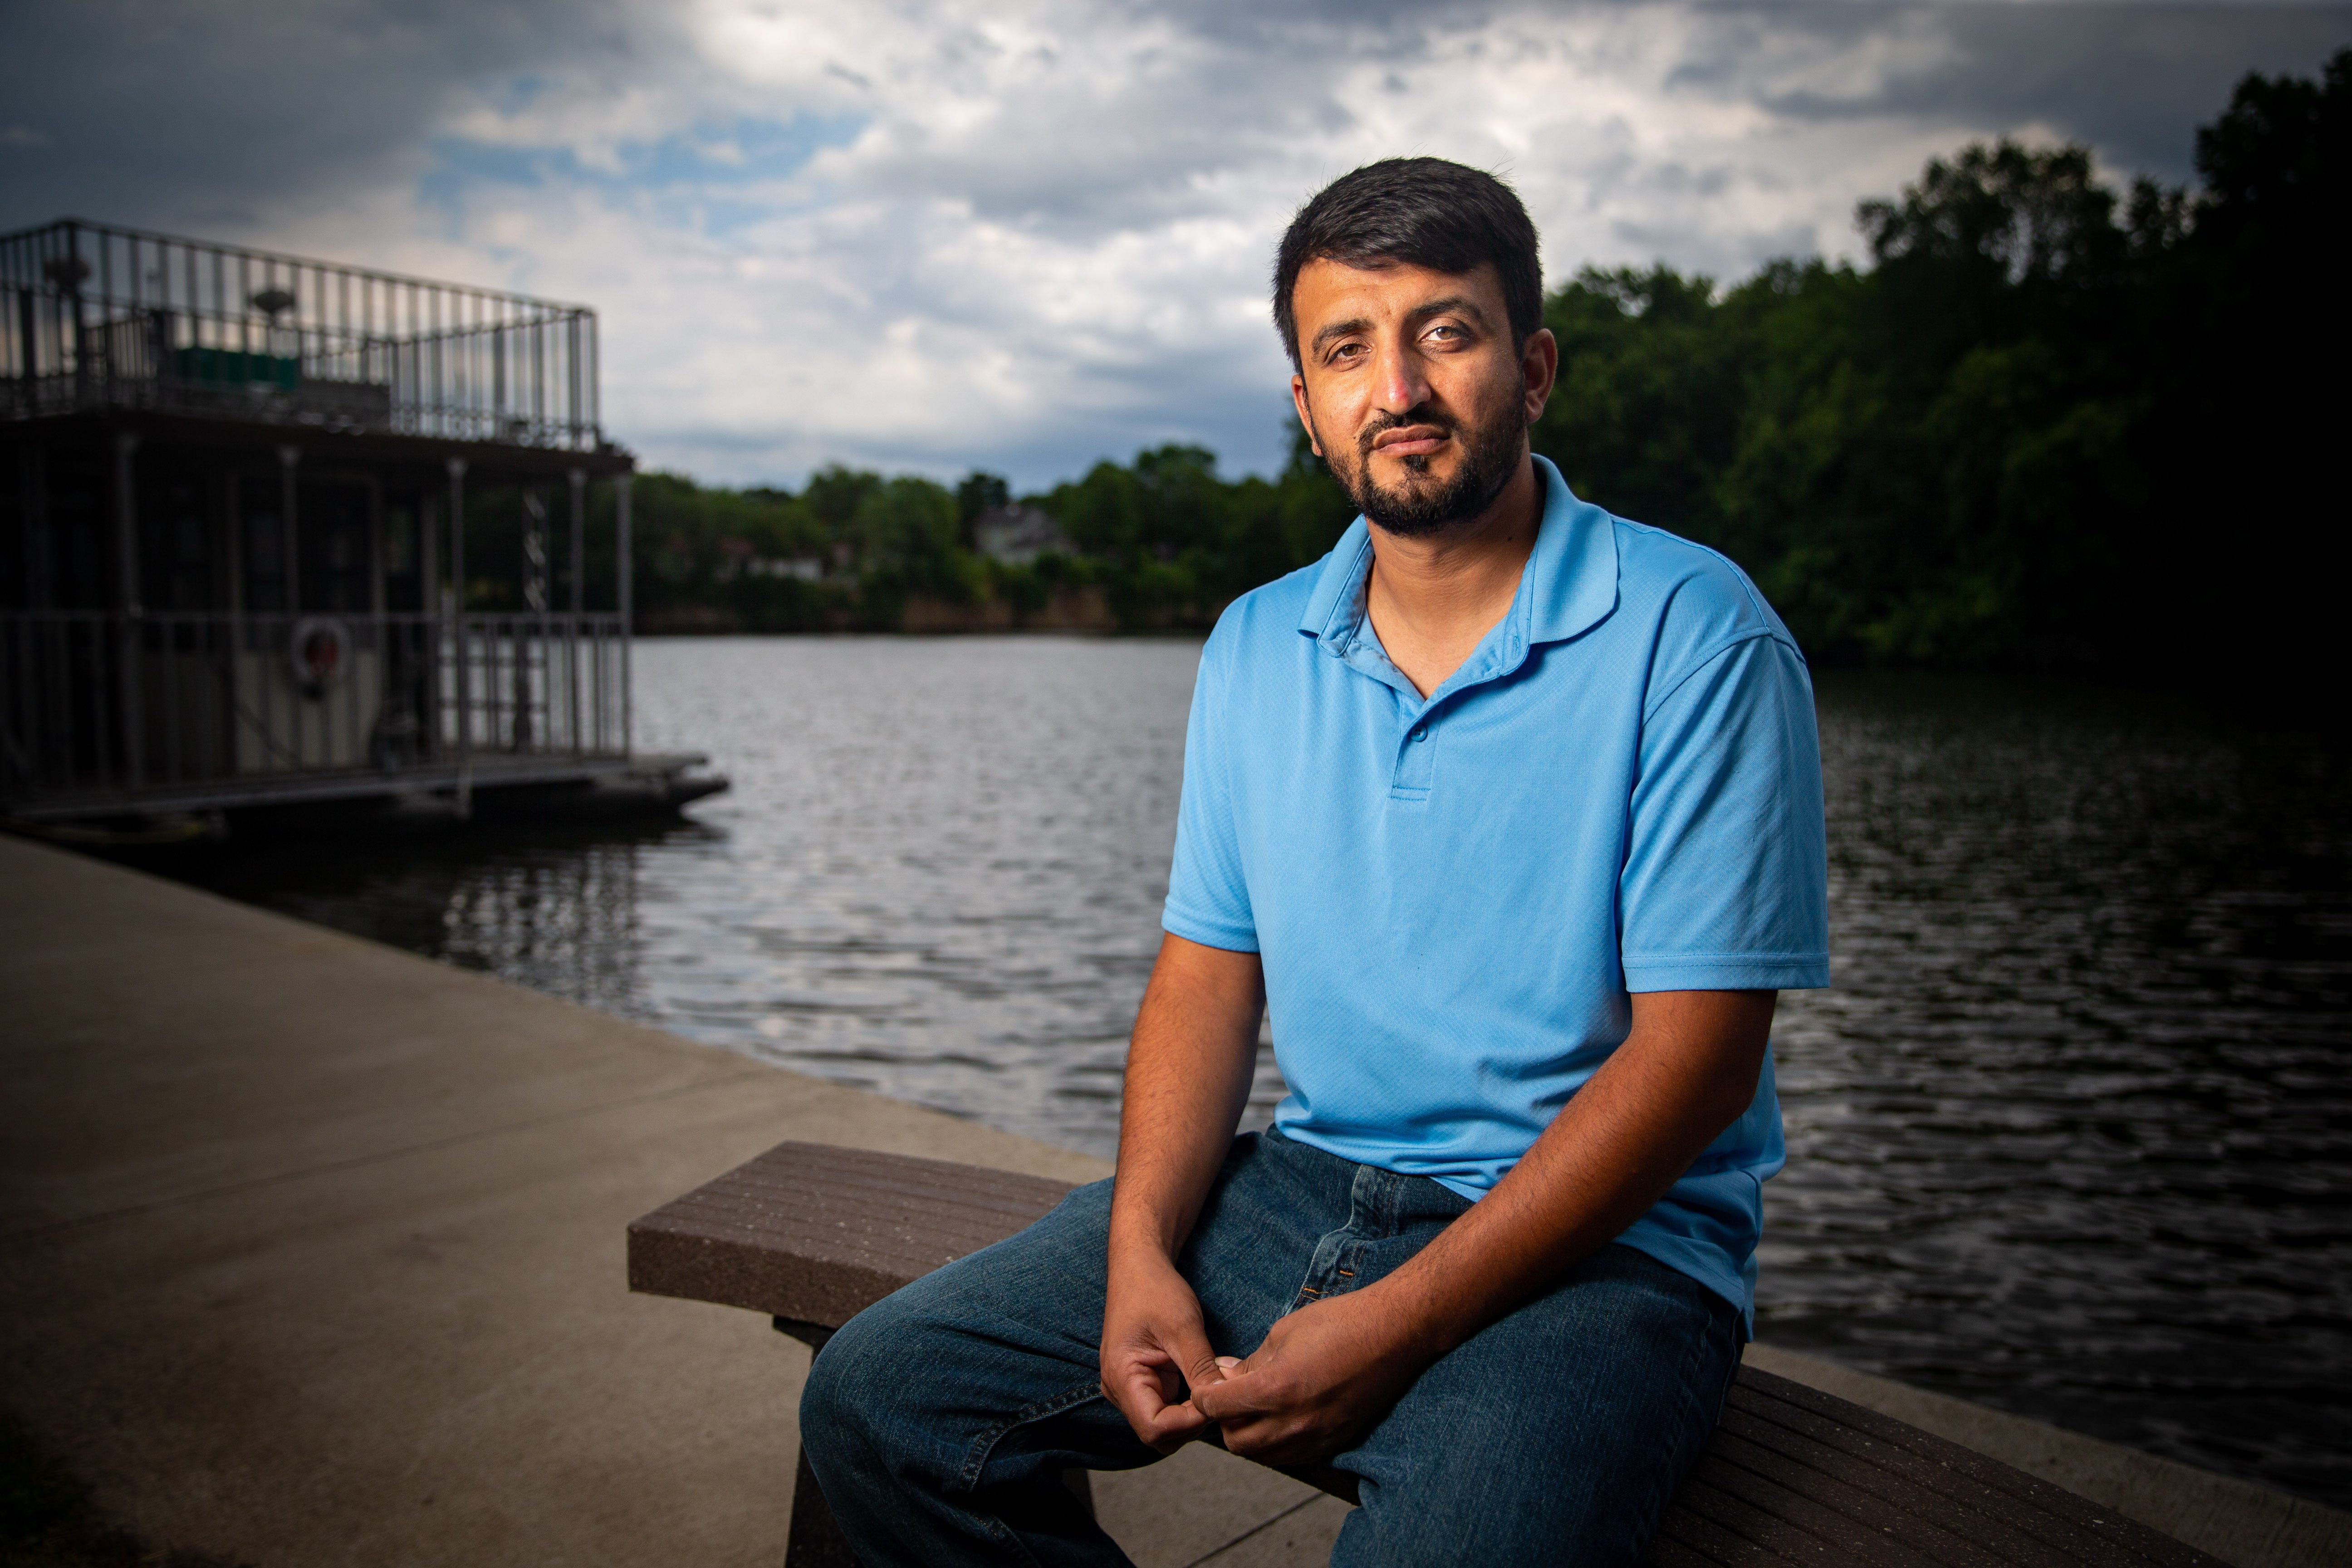 Zalmay Niazy worked as a translator for U.S. armed forces in Afghanistan where he was born and raised. In 2015, he moved to Iowa Falls to escape the Taliban.